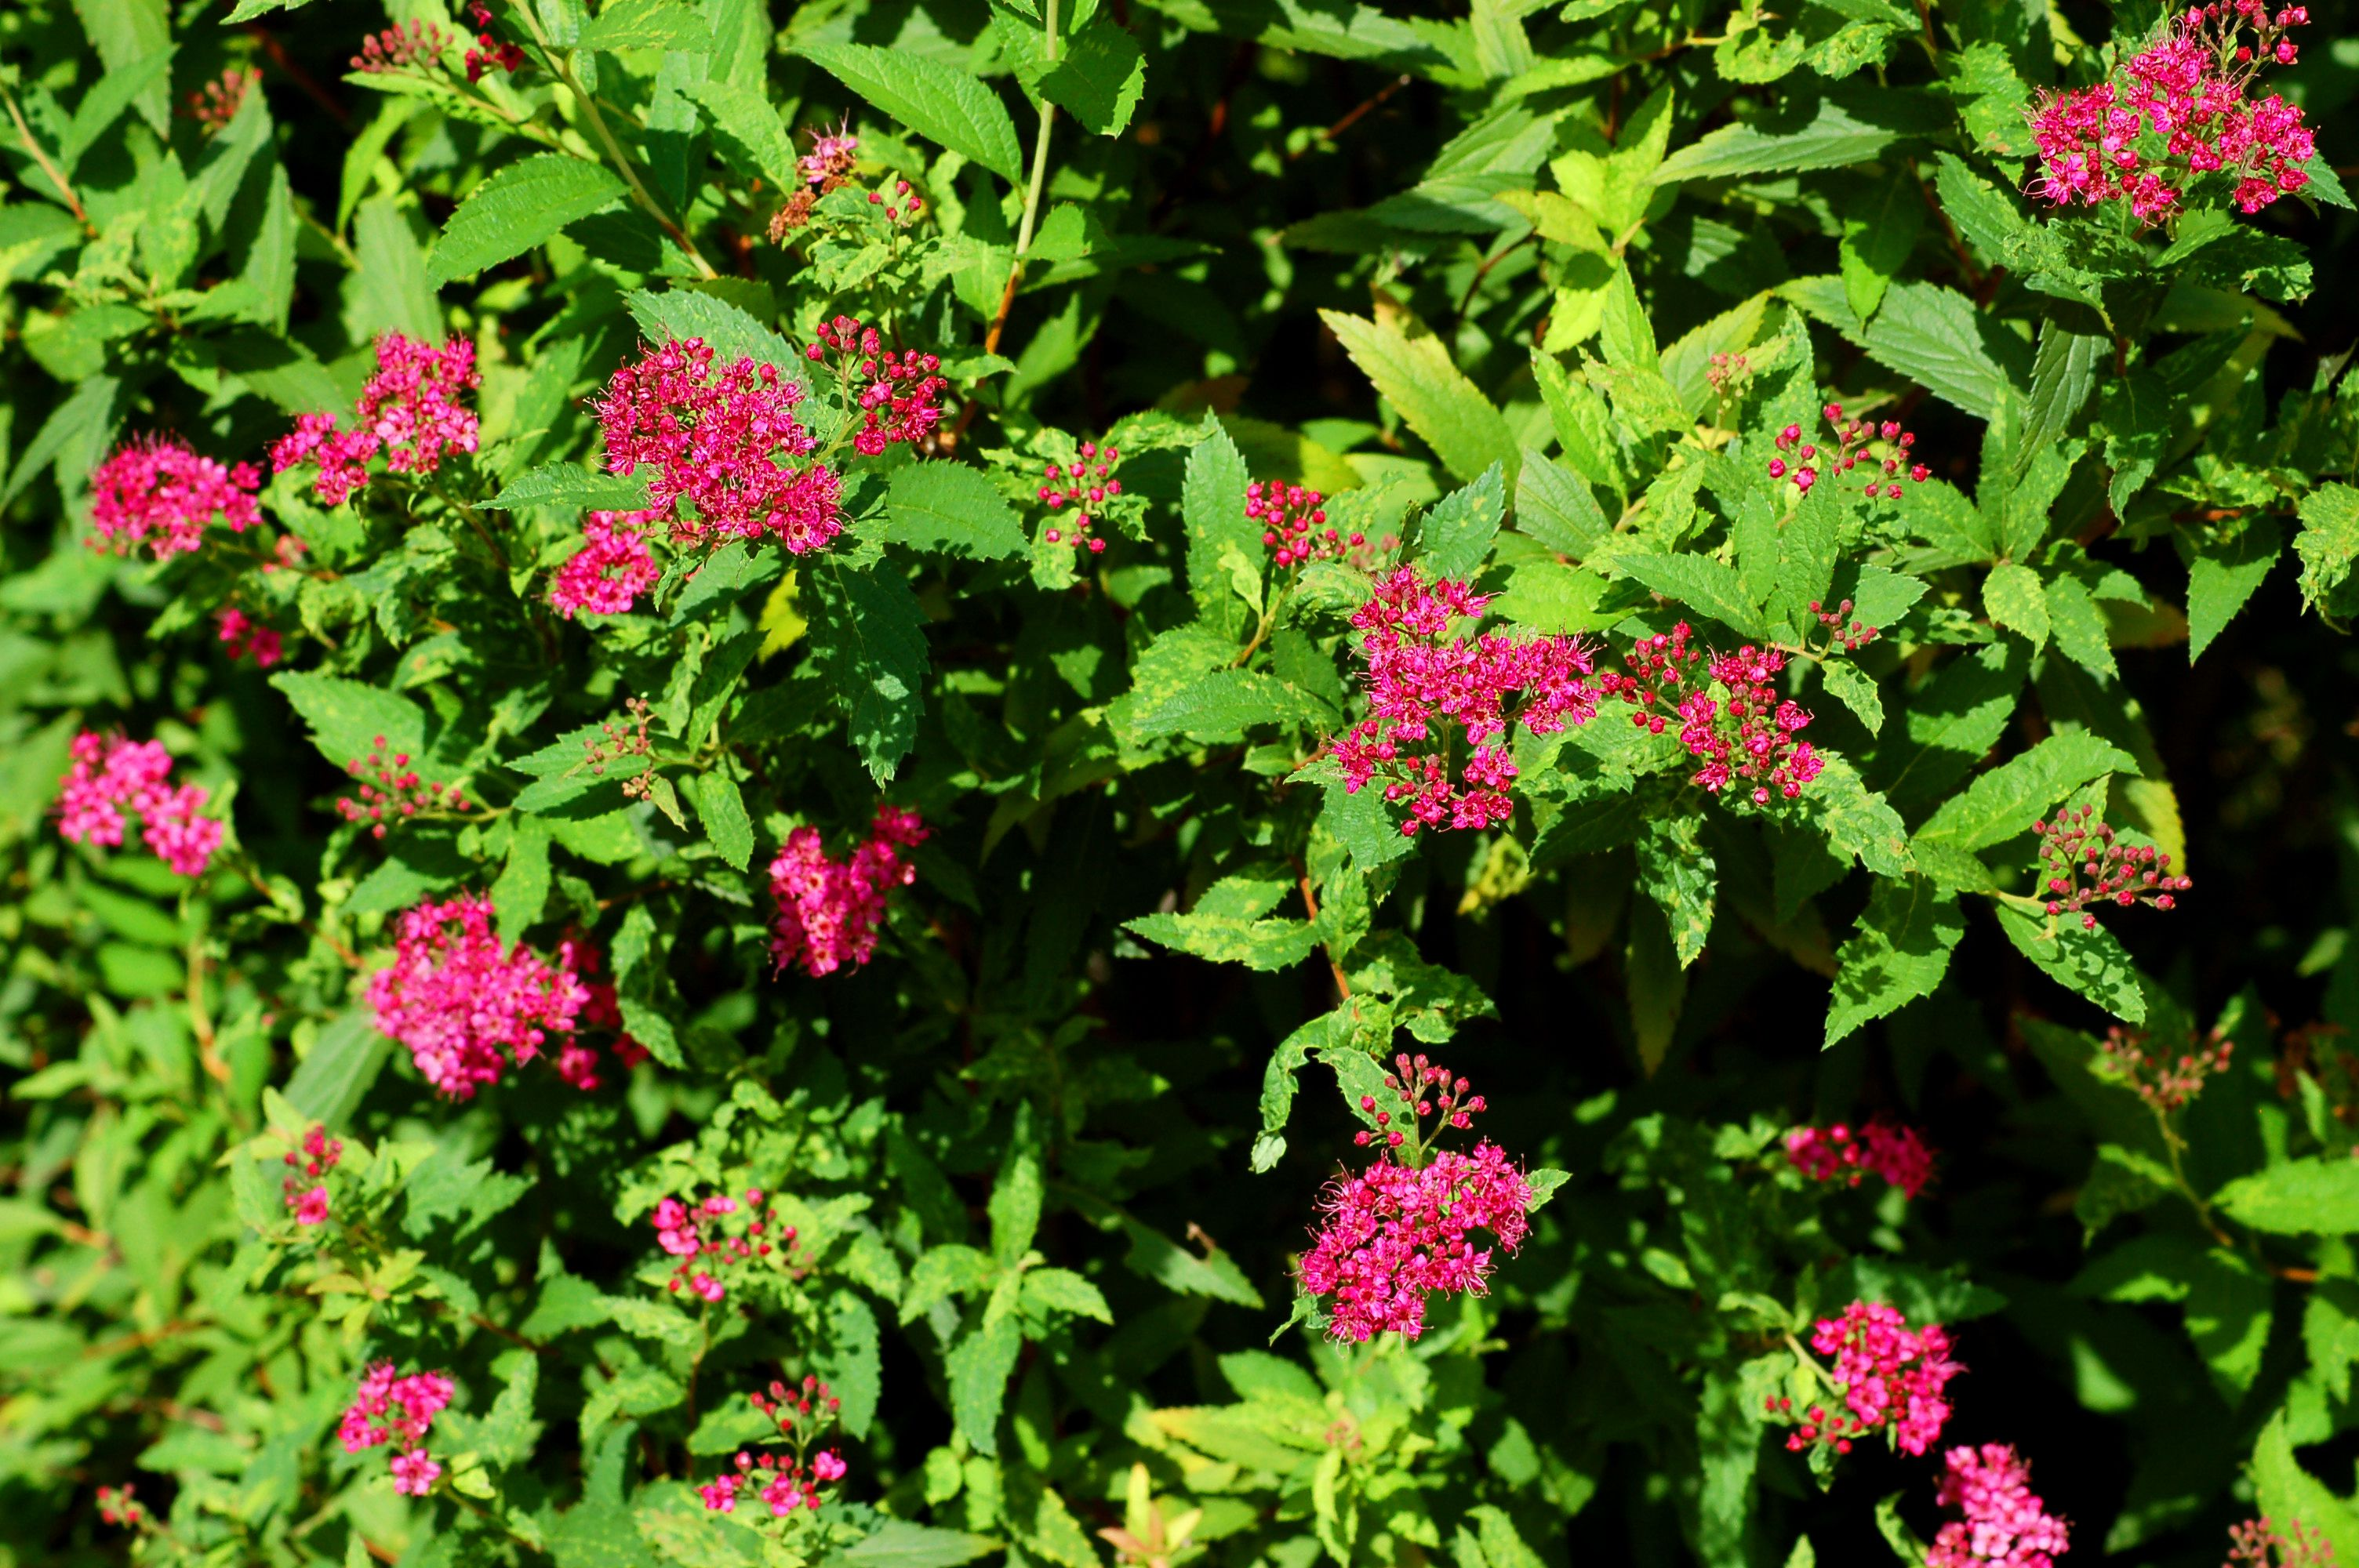 Neon Flash spirea in bloom.